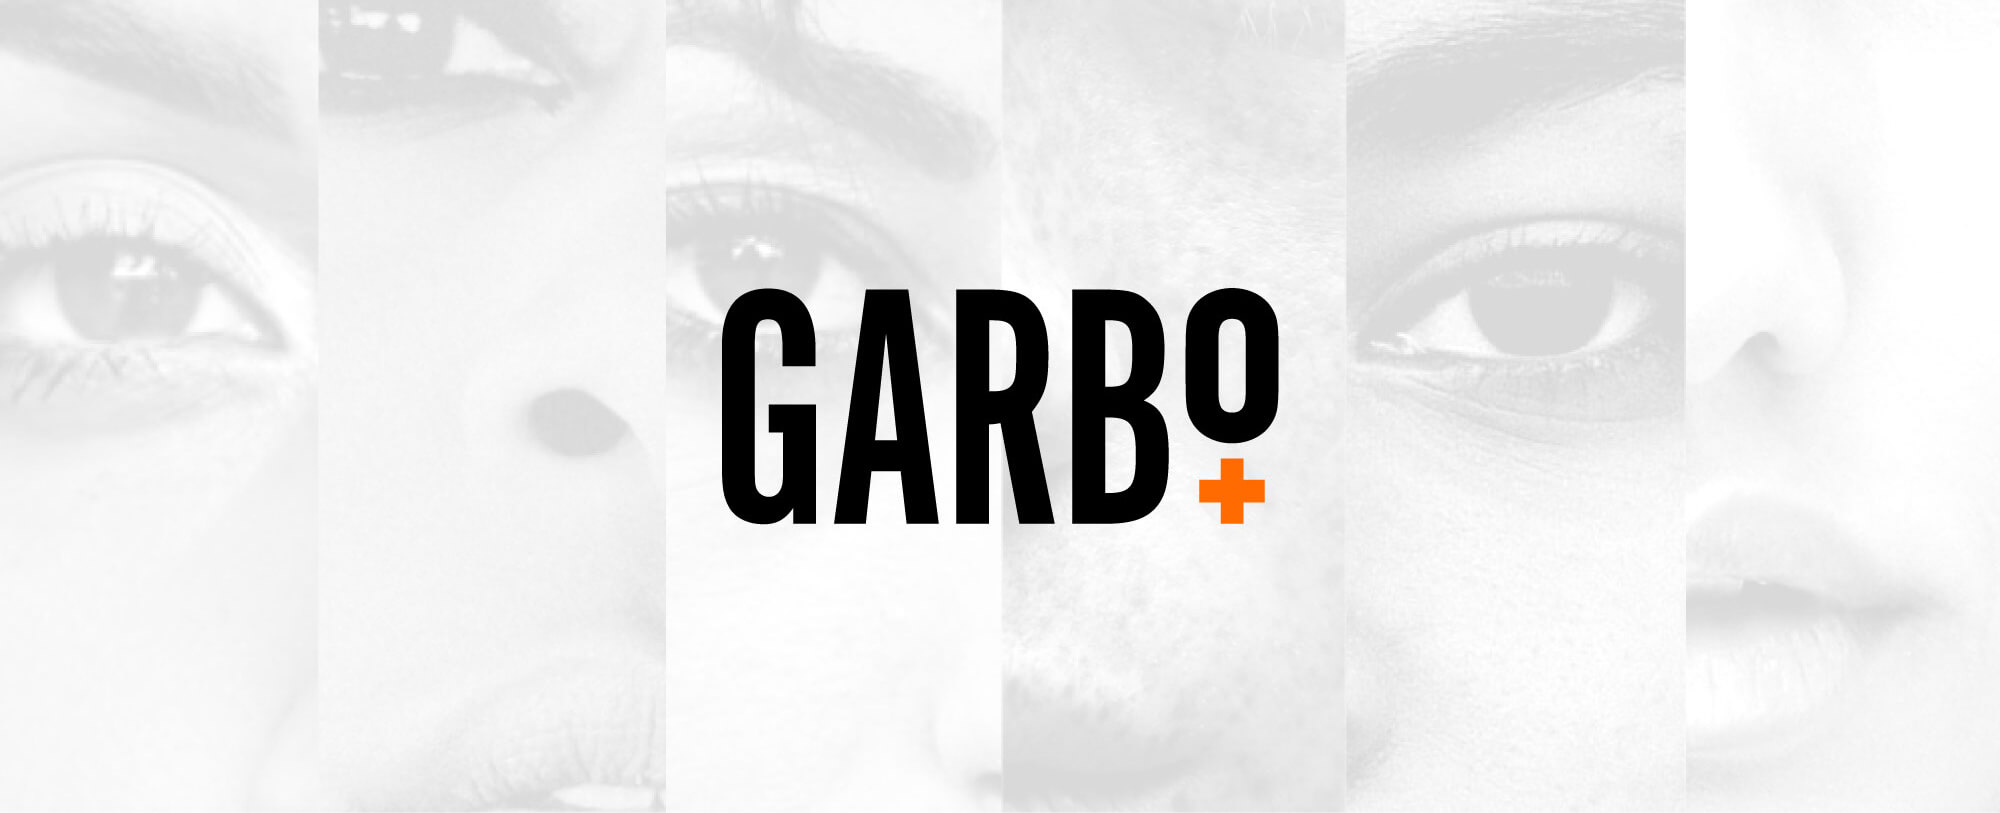 garbo logo over a grid of facial features